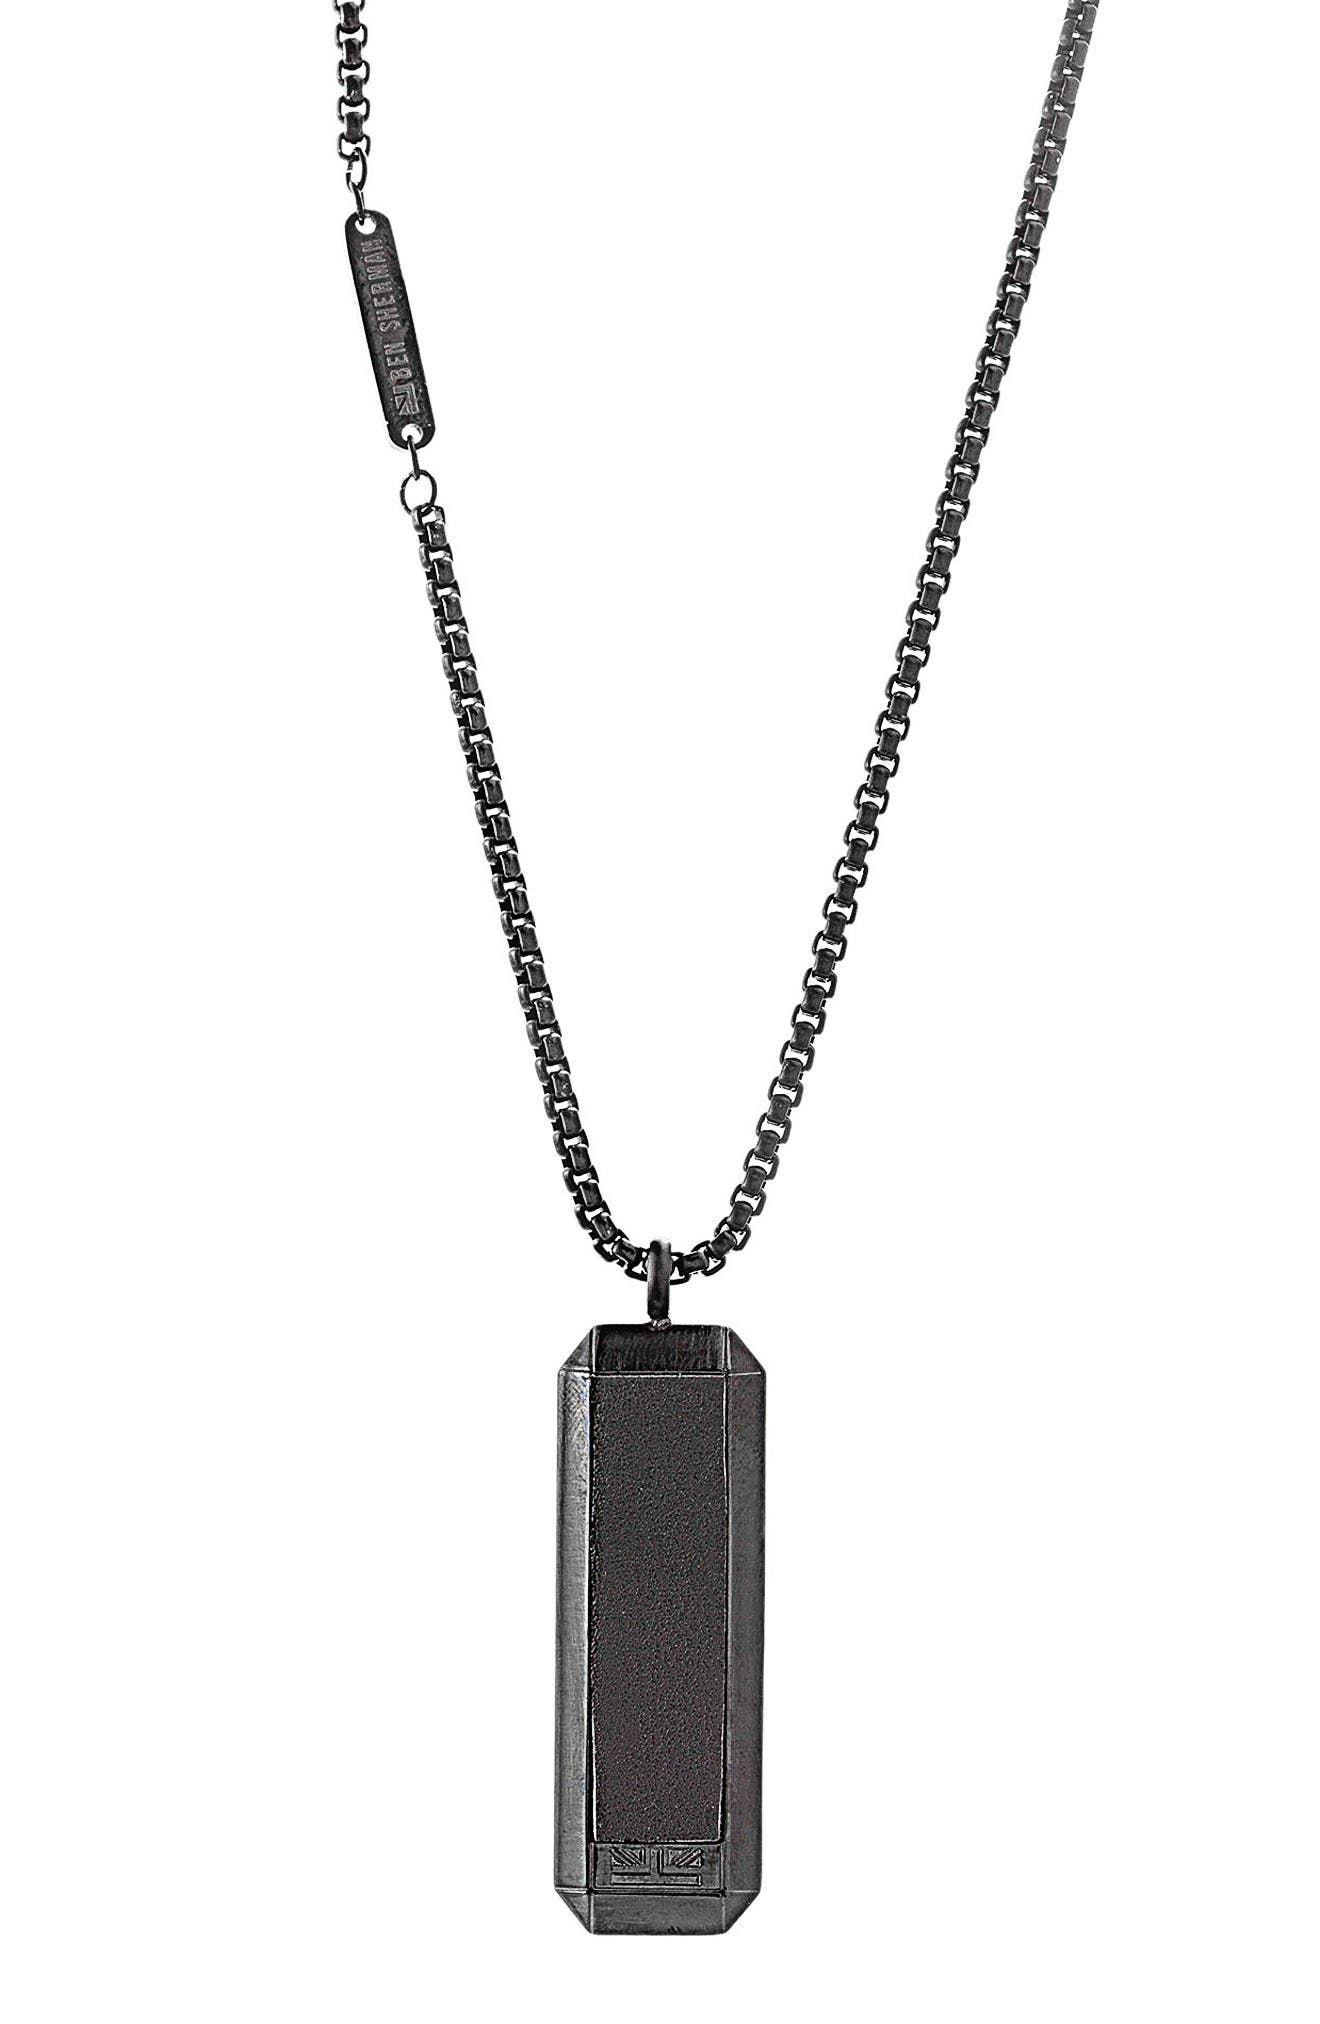 Leather Dog Tag Necklace,                             Main thumbnail 1, color,                             Black